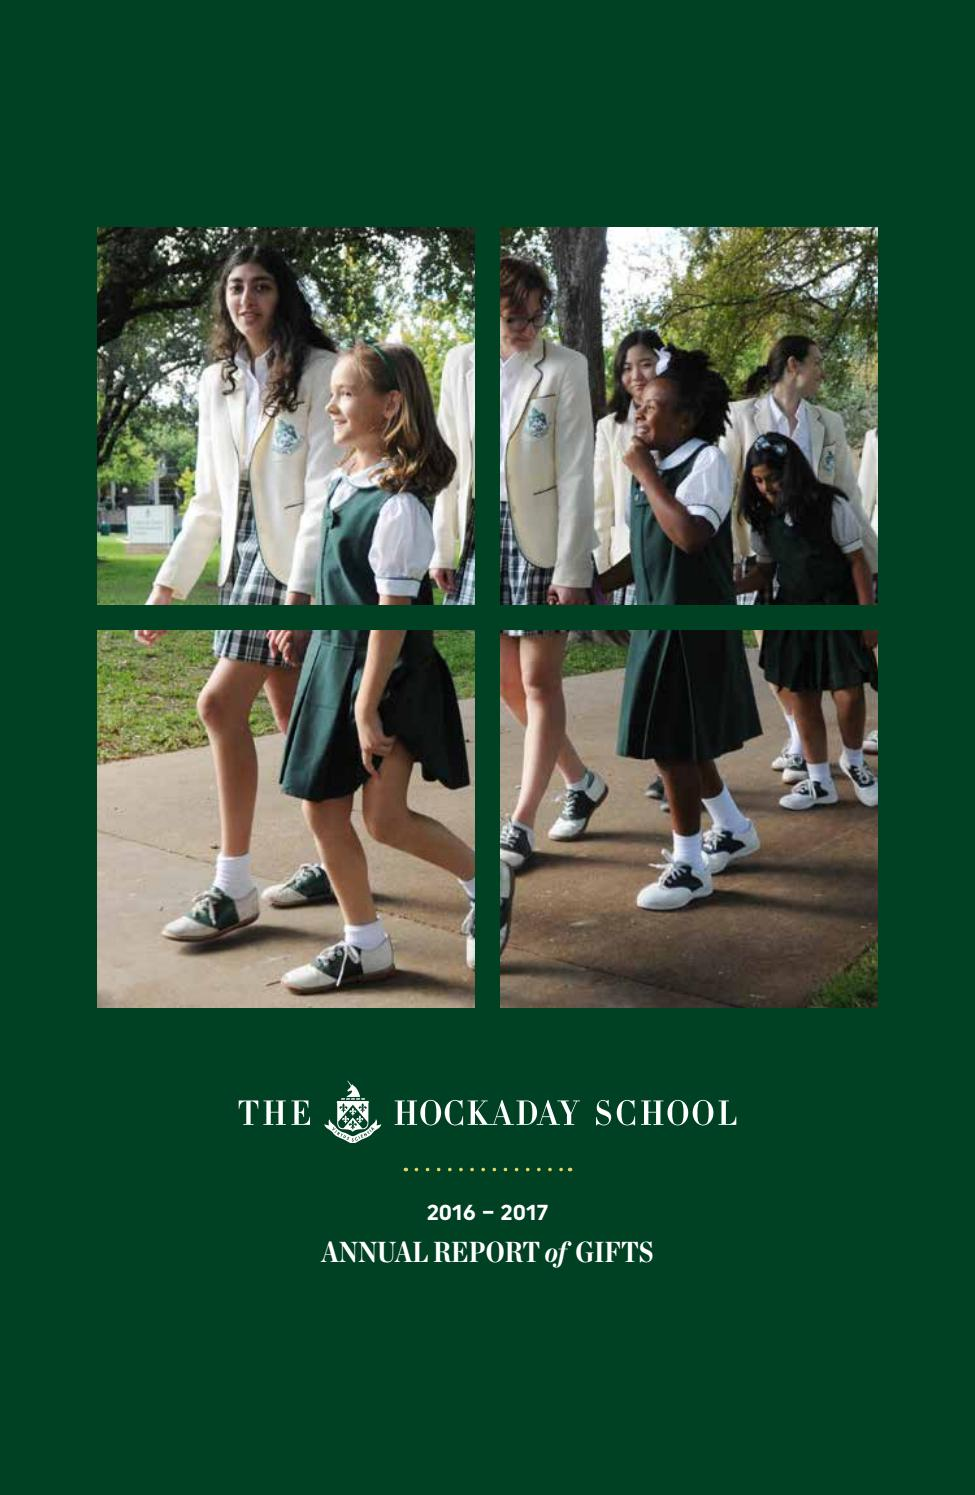 2016 – 2017 Annual Report of Gifts by The Hockaday School - issuu